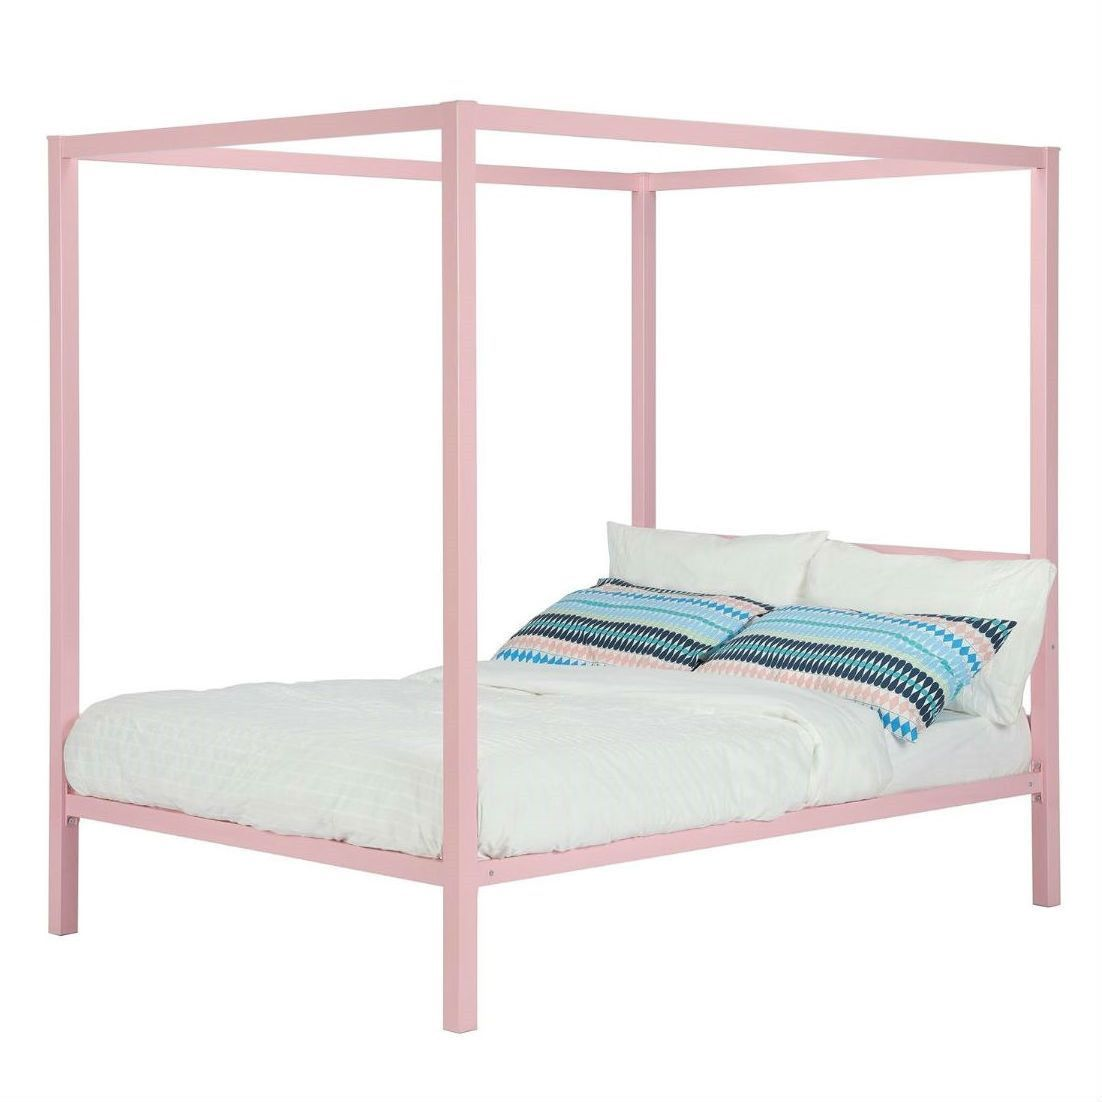 Twin Size Metal Platform Canopy Bed Frame In Pink - Great For Kids ...